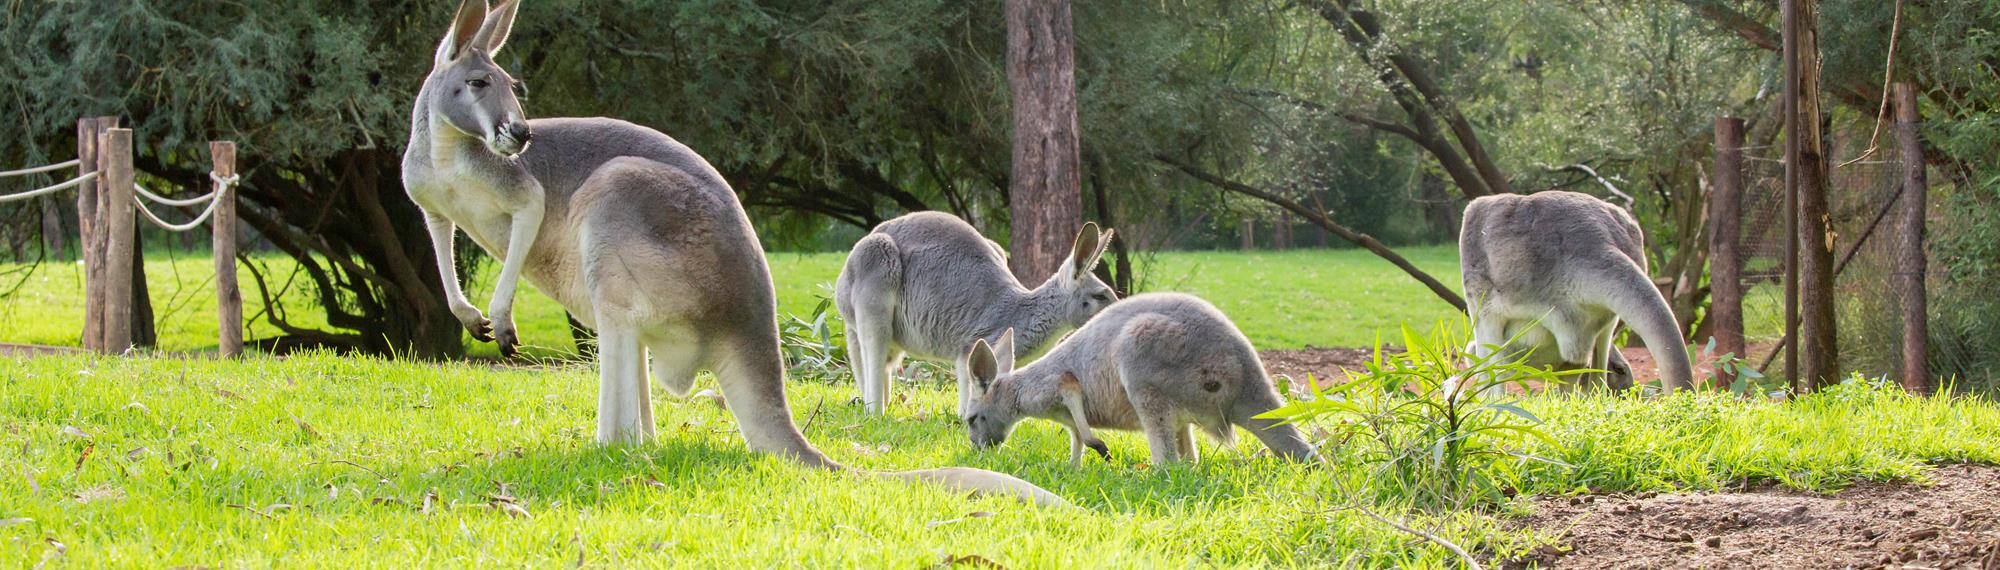 Four red kangaroos grazing on the green grass at Healesville Sanctuary.